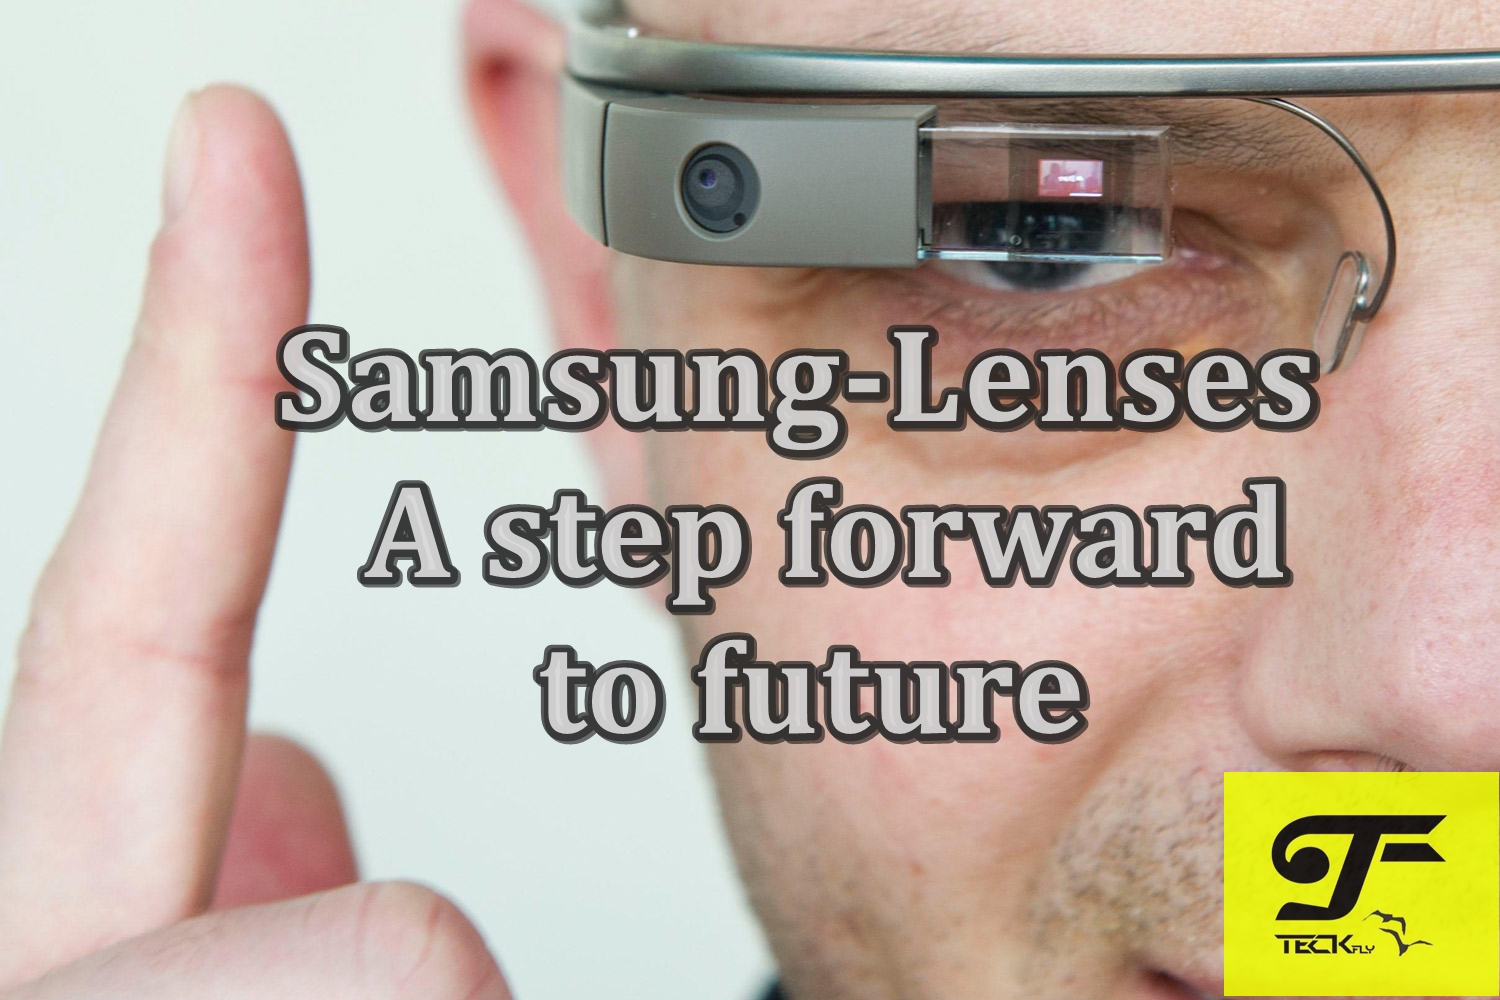 Samsung-Lenses A step forward to future